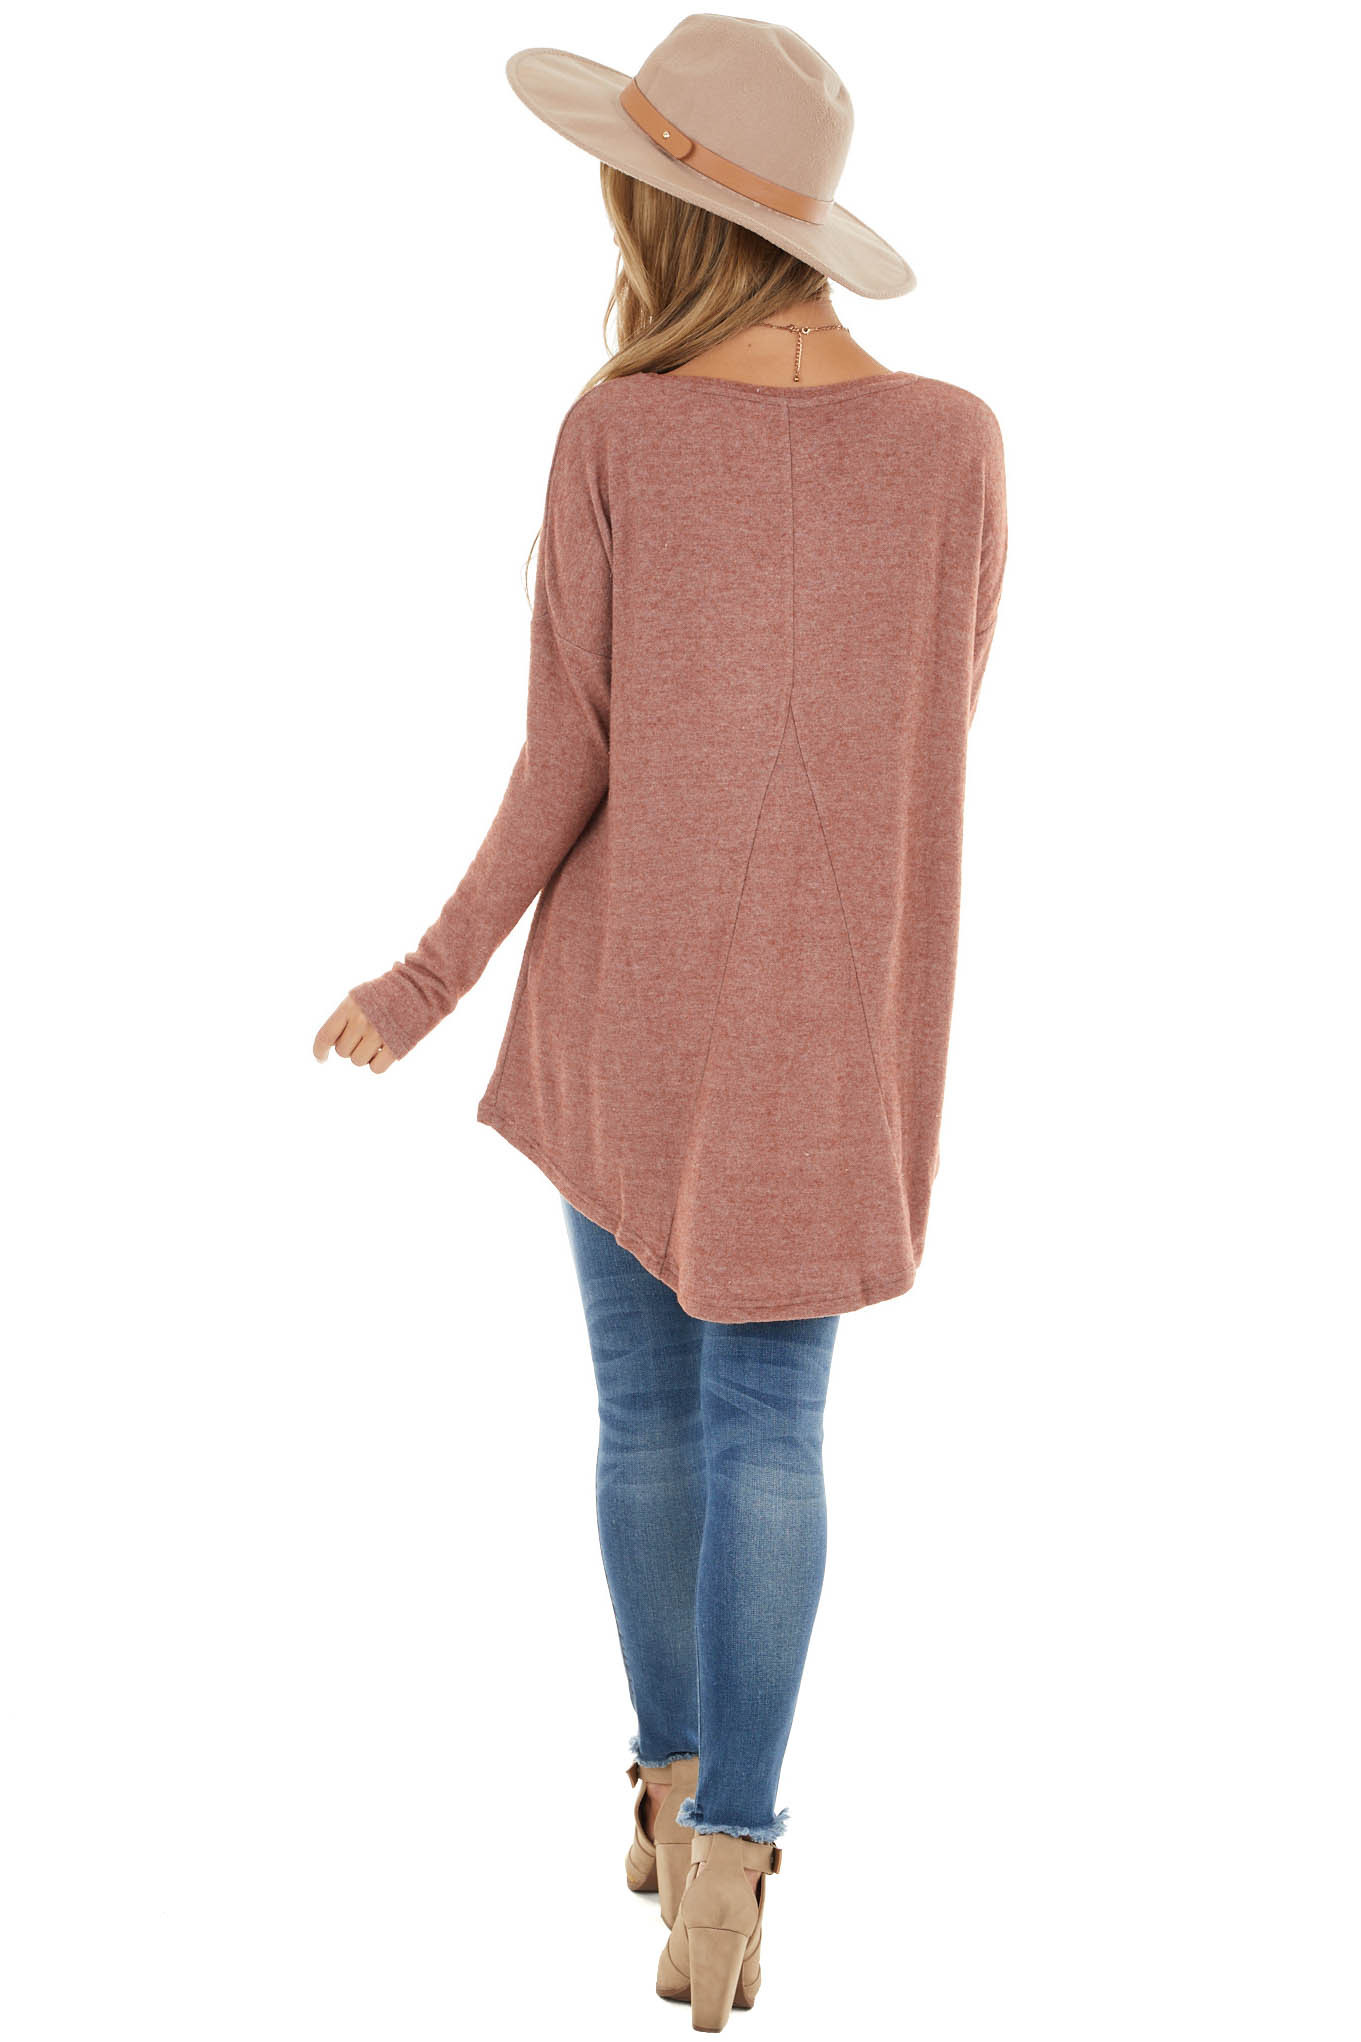 Marsala Fuzzy Knit High Low Tunic Top with Long Sleeves